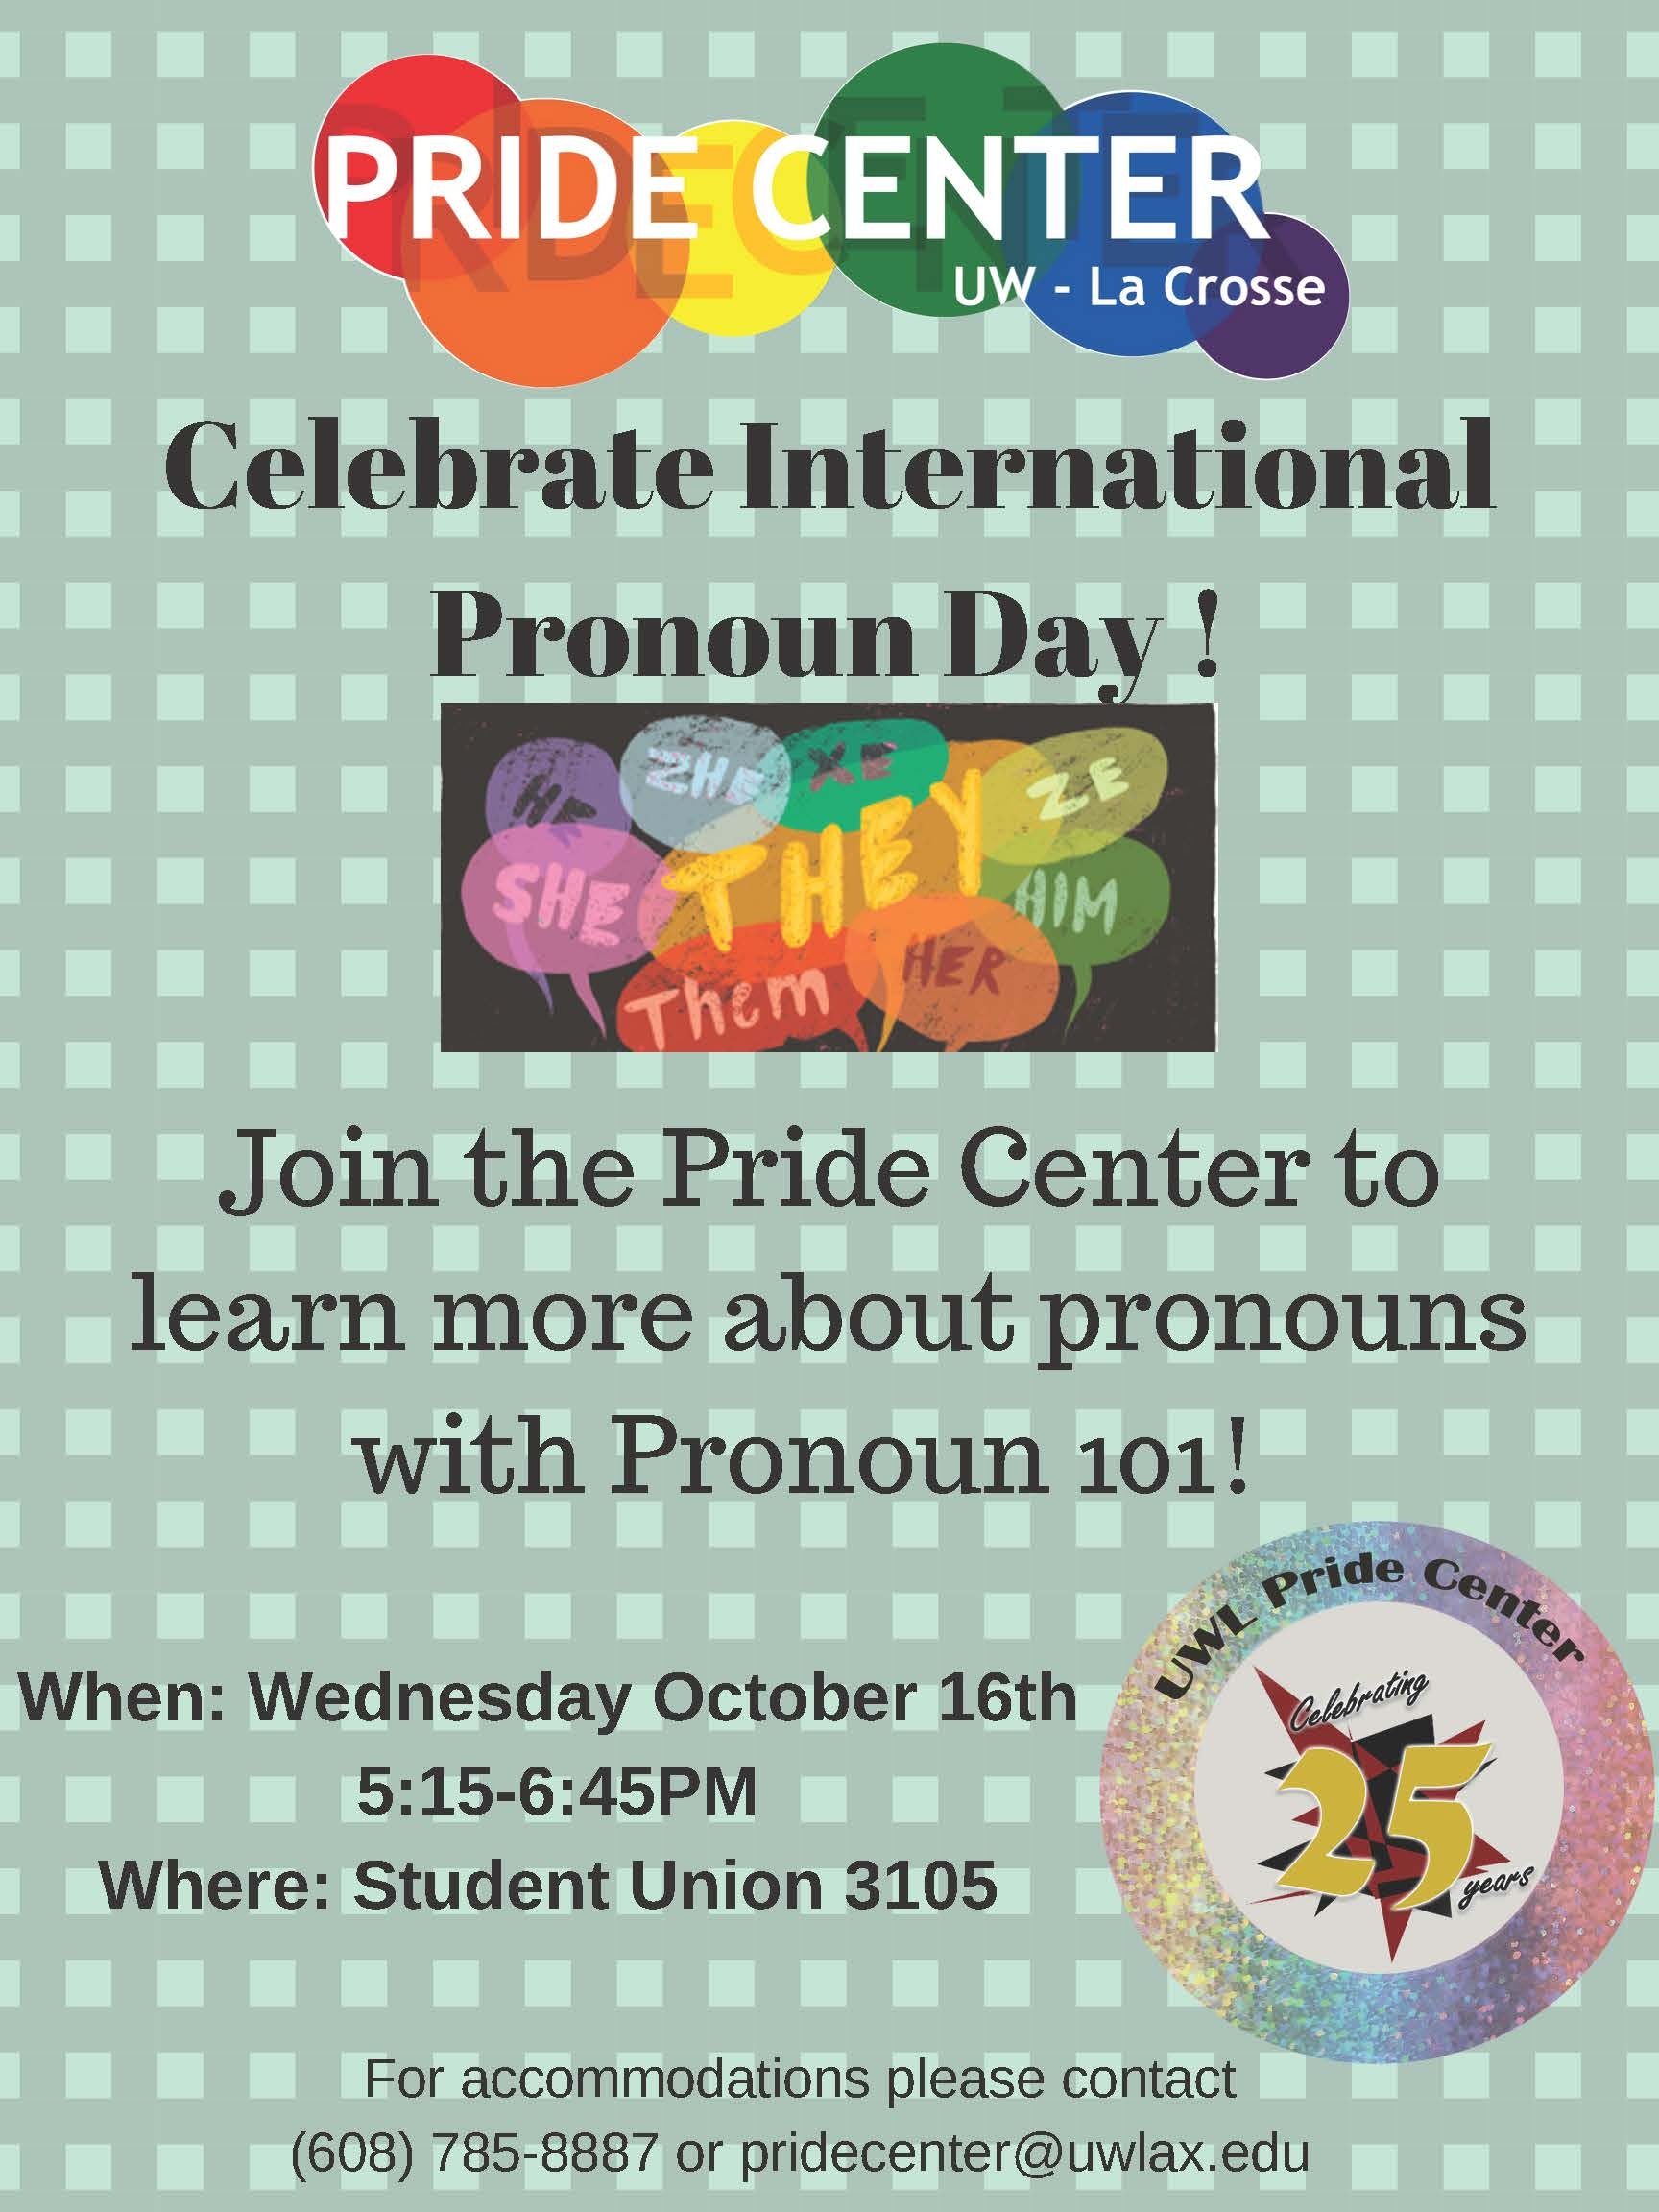 Poster for International Pronoun Day 5:15-6:45 pm in 3105 Student Union